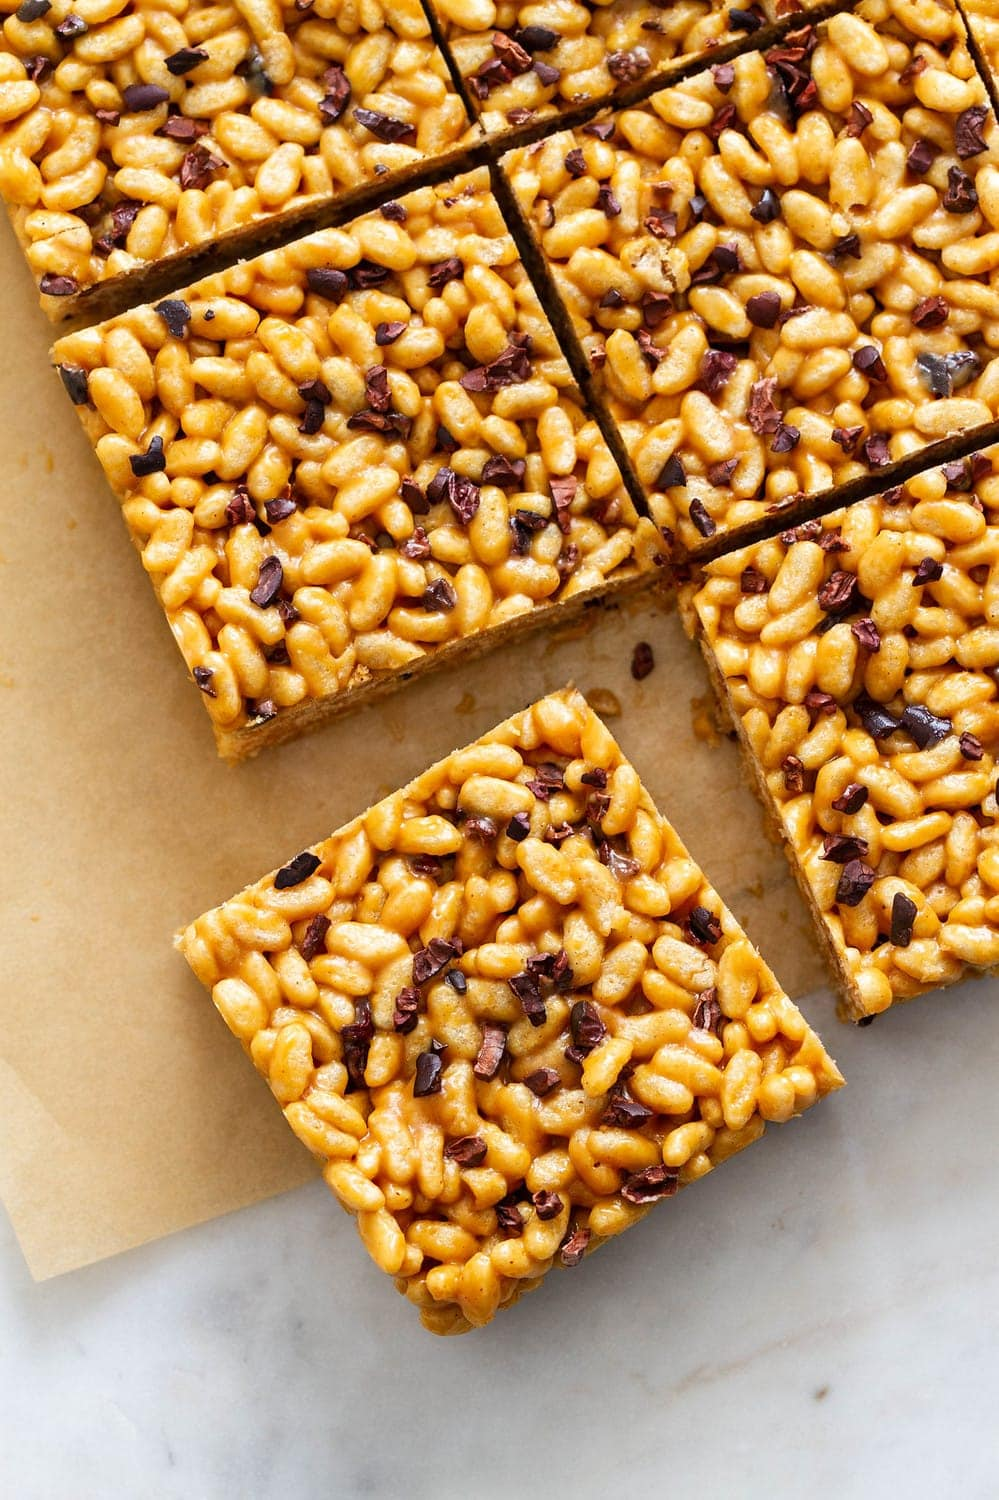 top down view of peanut butter cacao nibs rice crispy treats on parchment paper sliced into squares